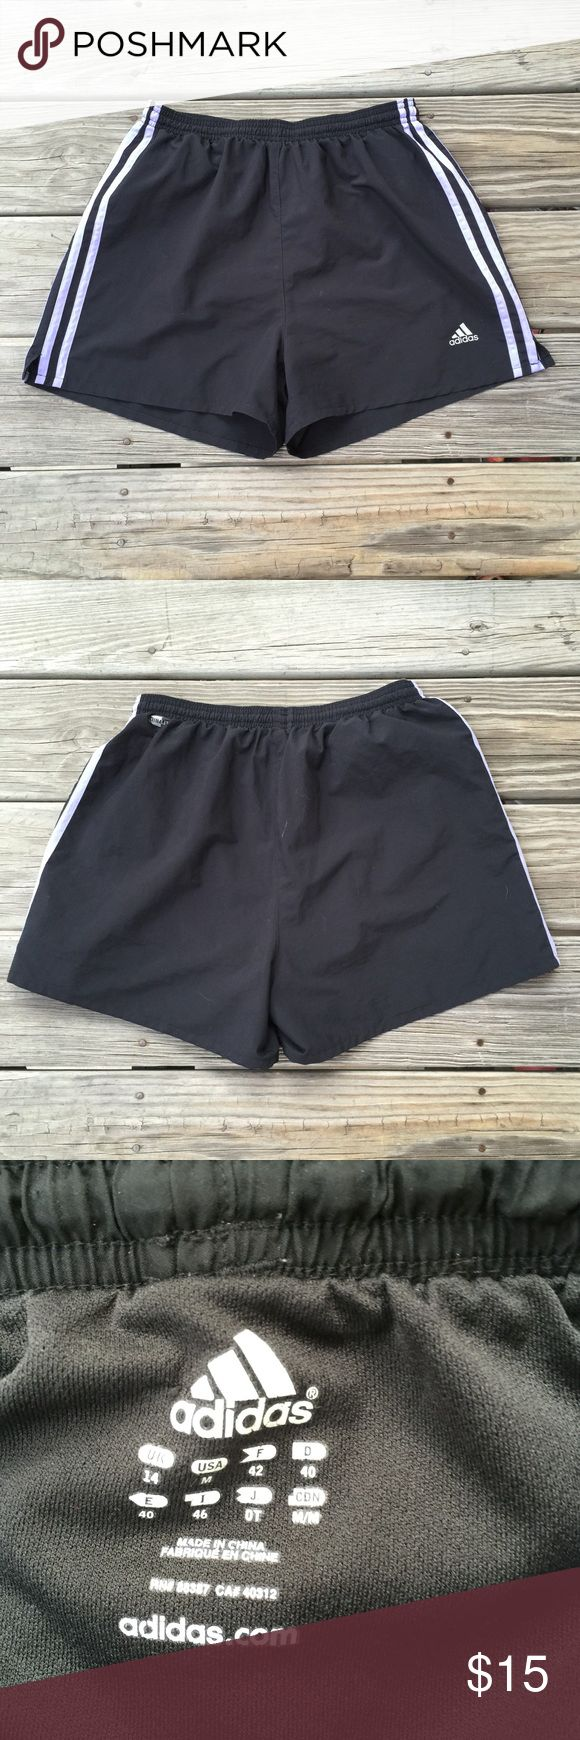 adidas soccer shorts adidas soccer shorts— size medium. like new condition, gently worn. black with the iconic three stripes in a beautiful lilac color (: has an inner liner.   no flaws noted adidas Shorts